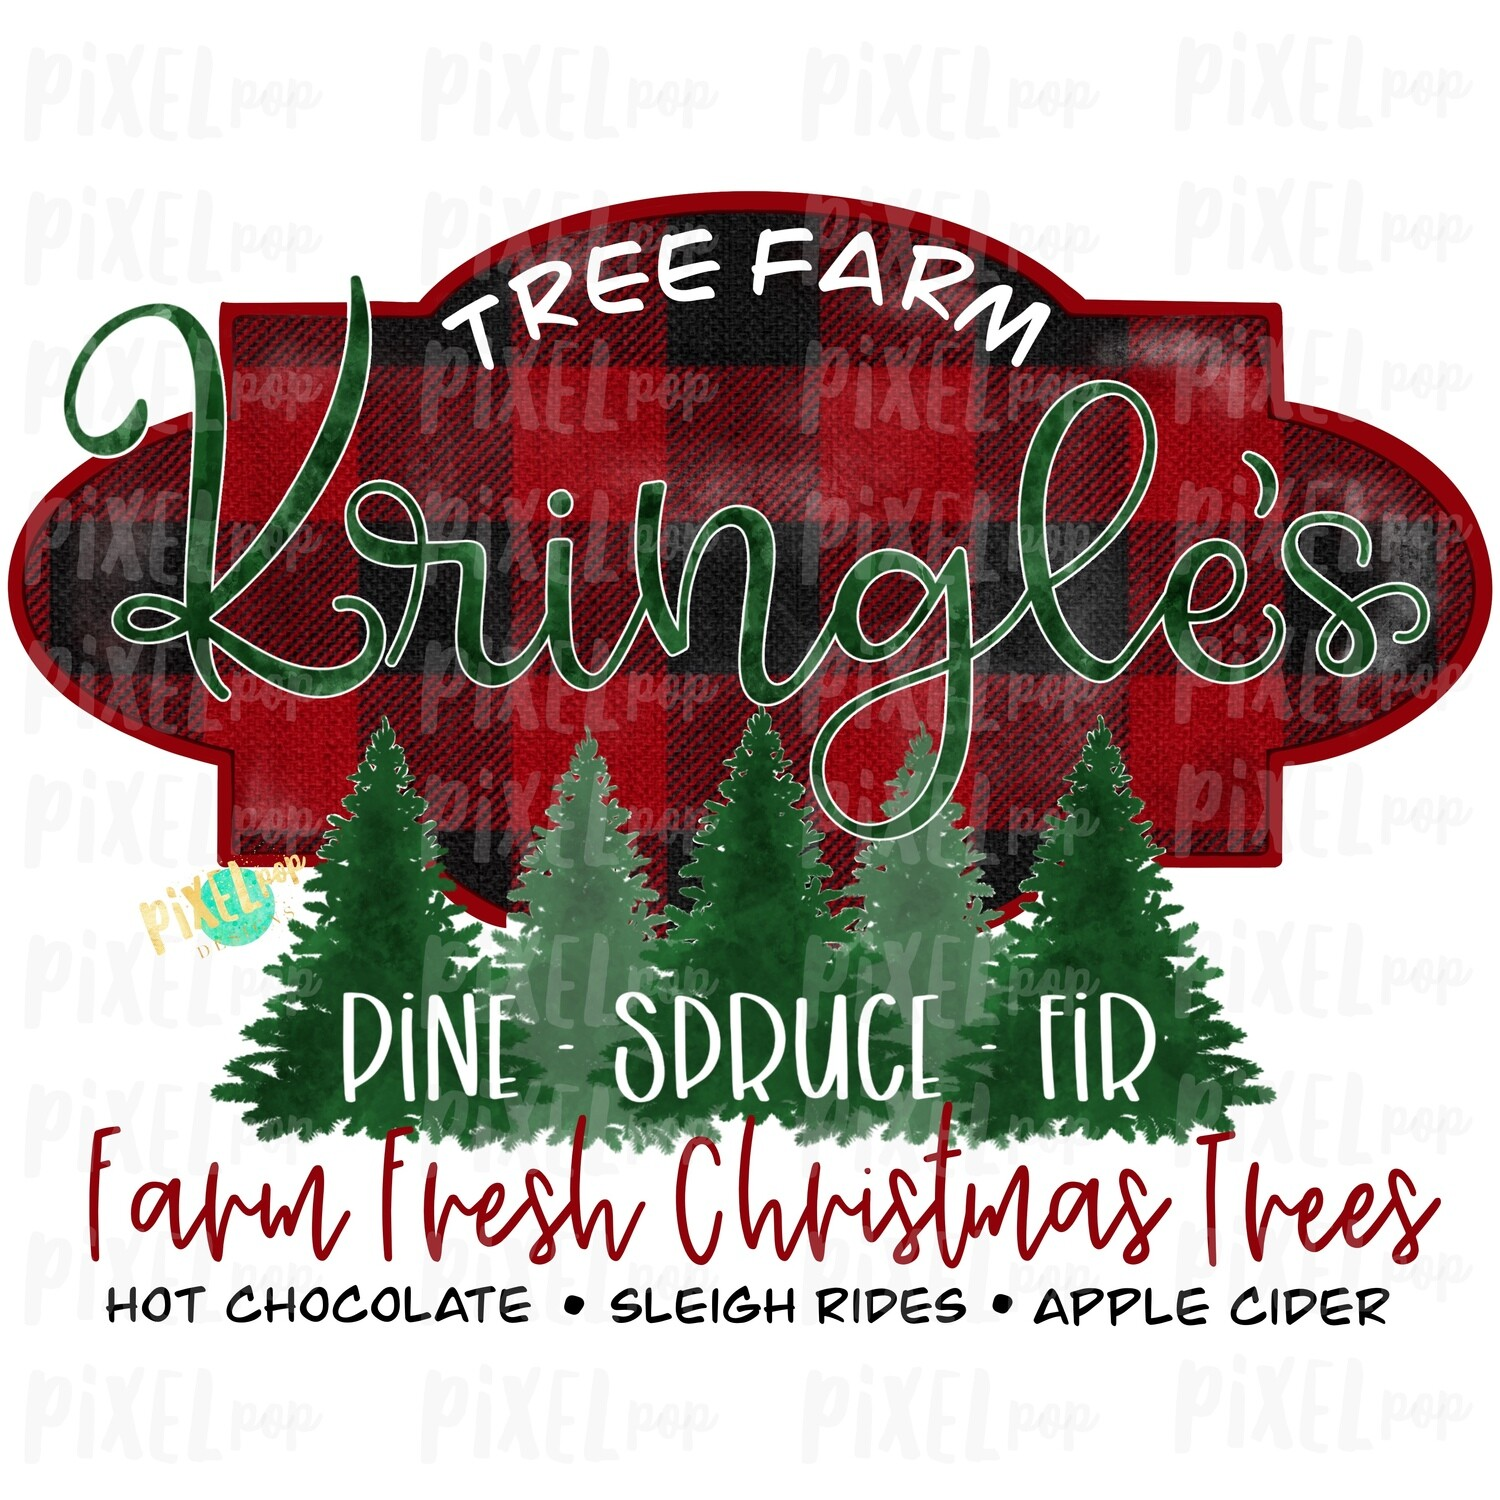 Kringle's Christmas Tree Farm Watercolor Sublimation PNG | Tree Farm Art | Hand Drawn Design | Digital Download | Printable Artwork | Art